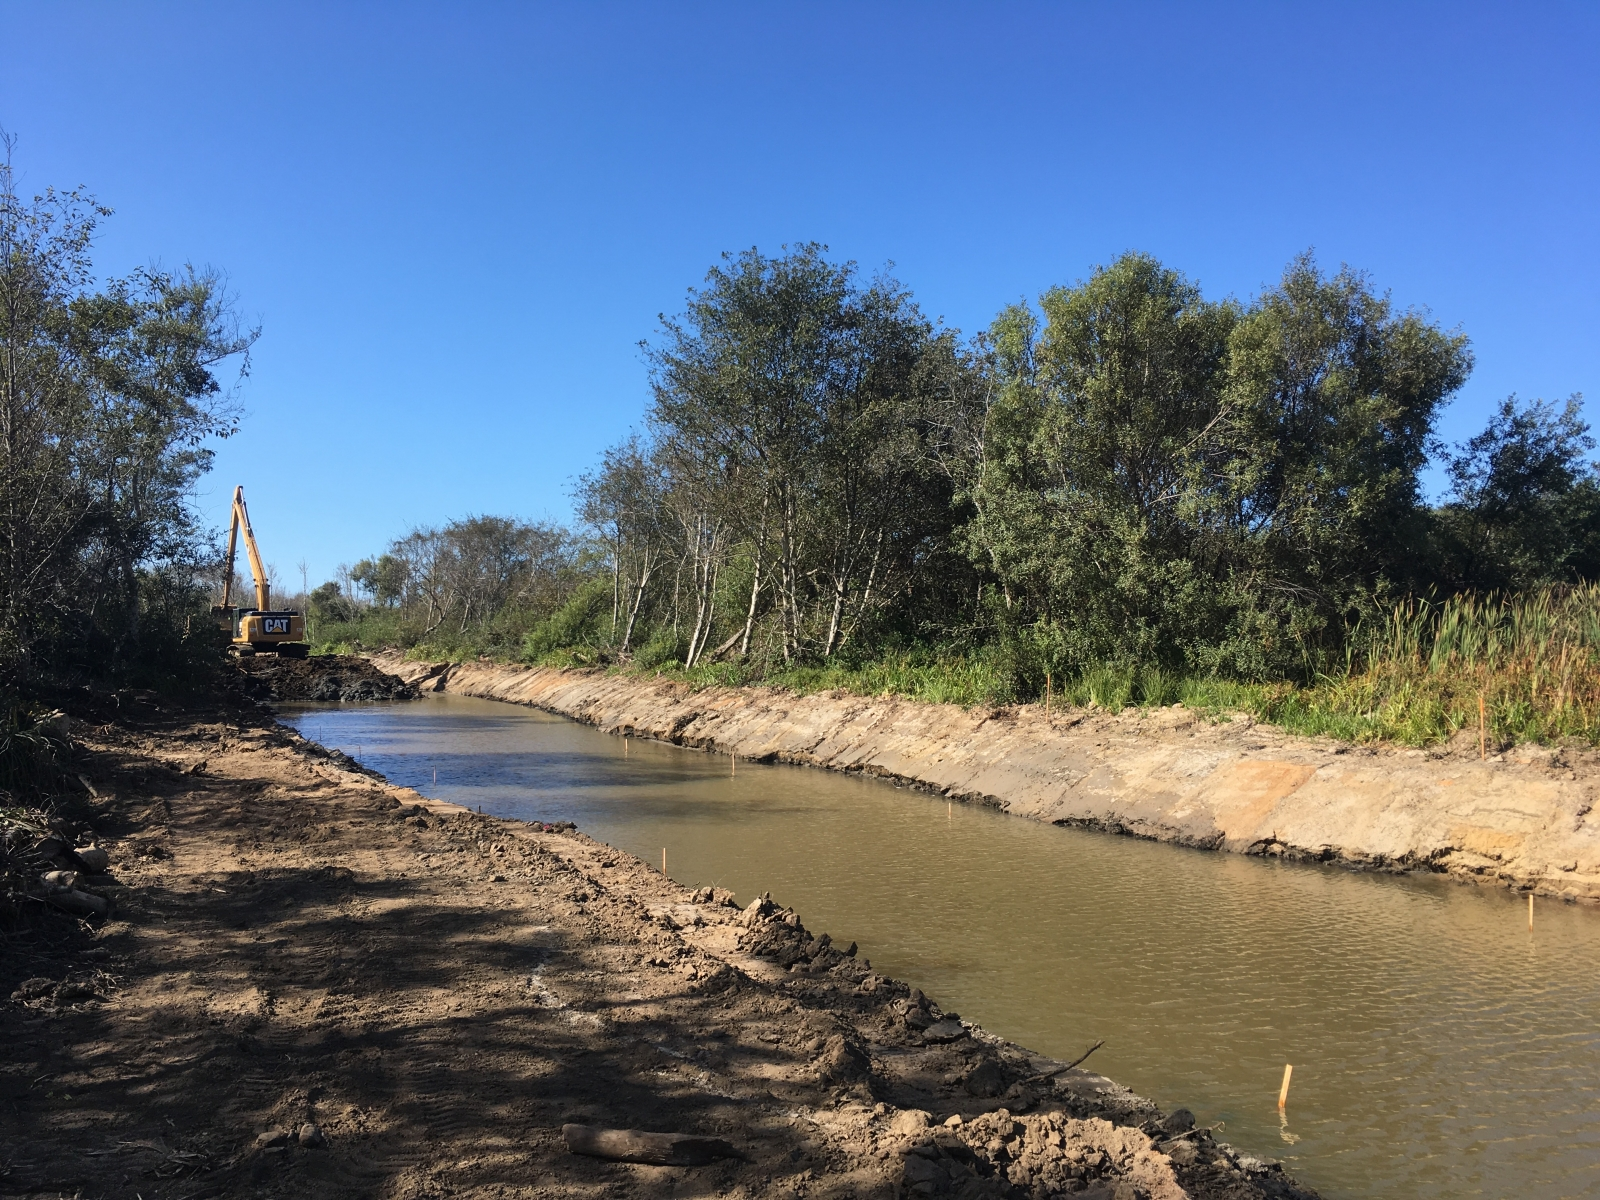 Upper Reach Excavation - Looking downstream from Pescadero Creek Rd. Bridge, the excavator completes final excavation of the Butano channel.September 2019